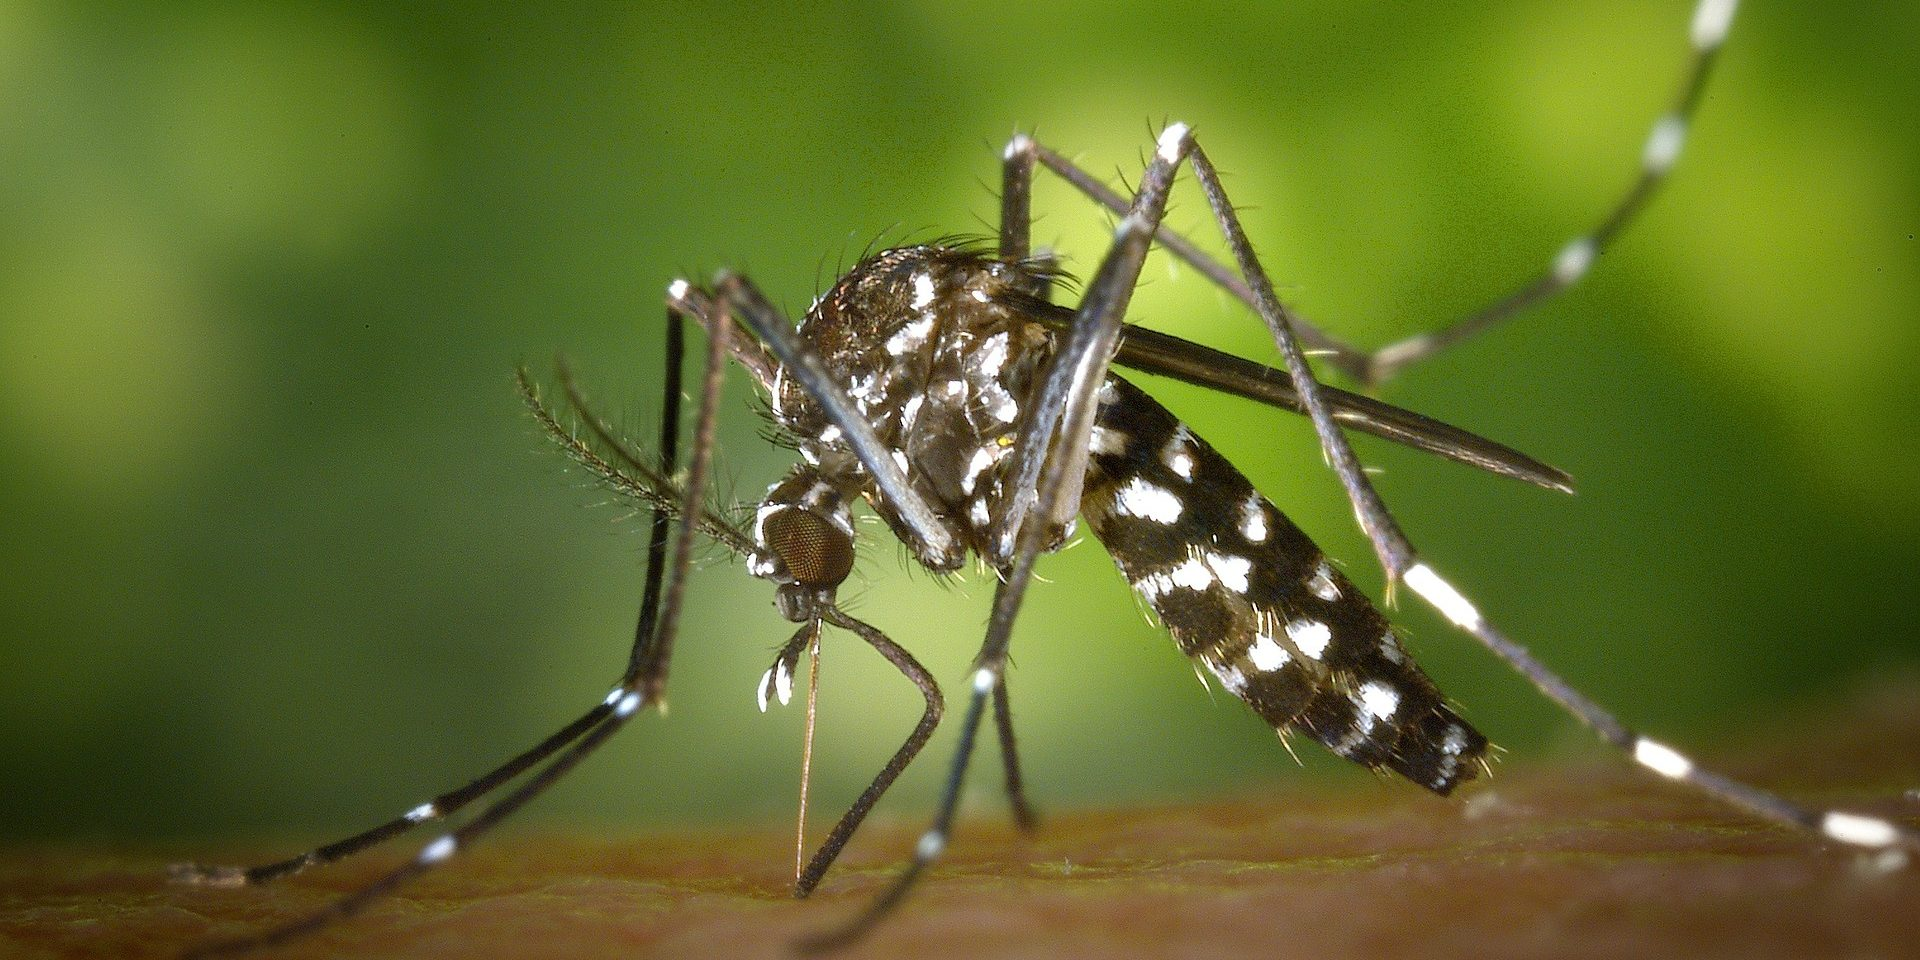 tiger-mosquito-49141_1920